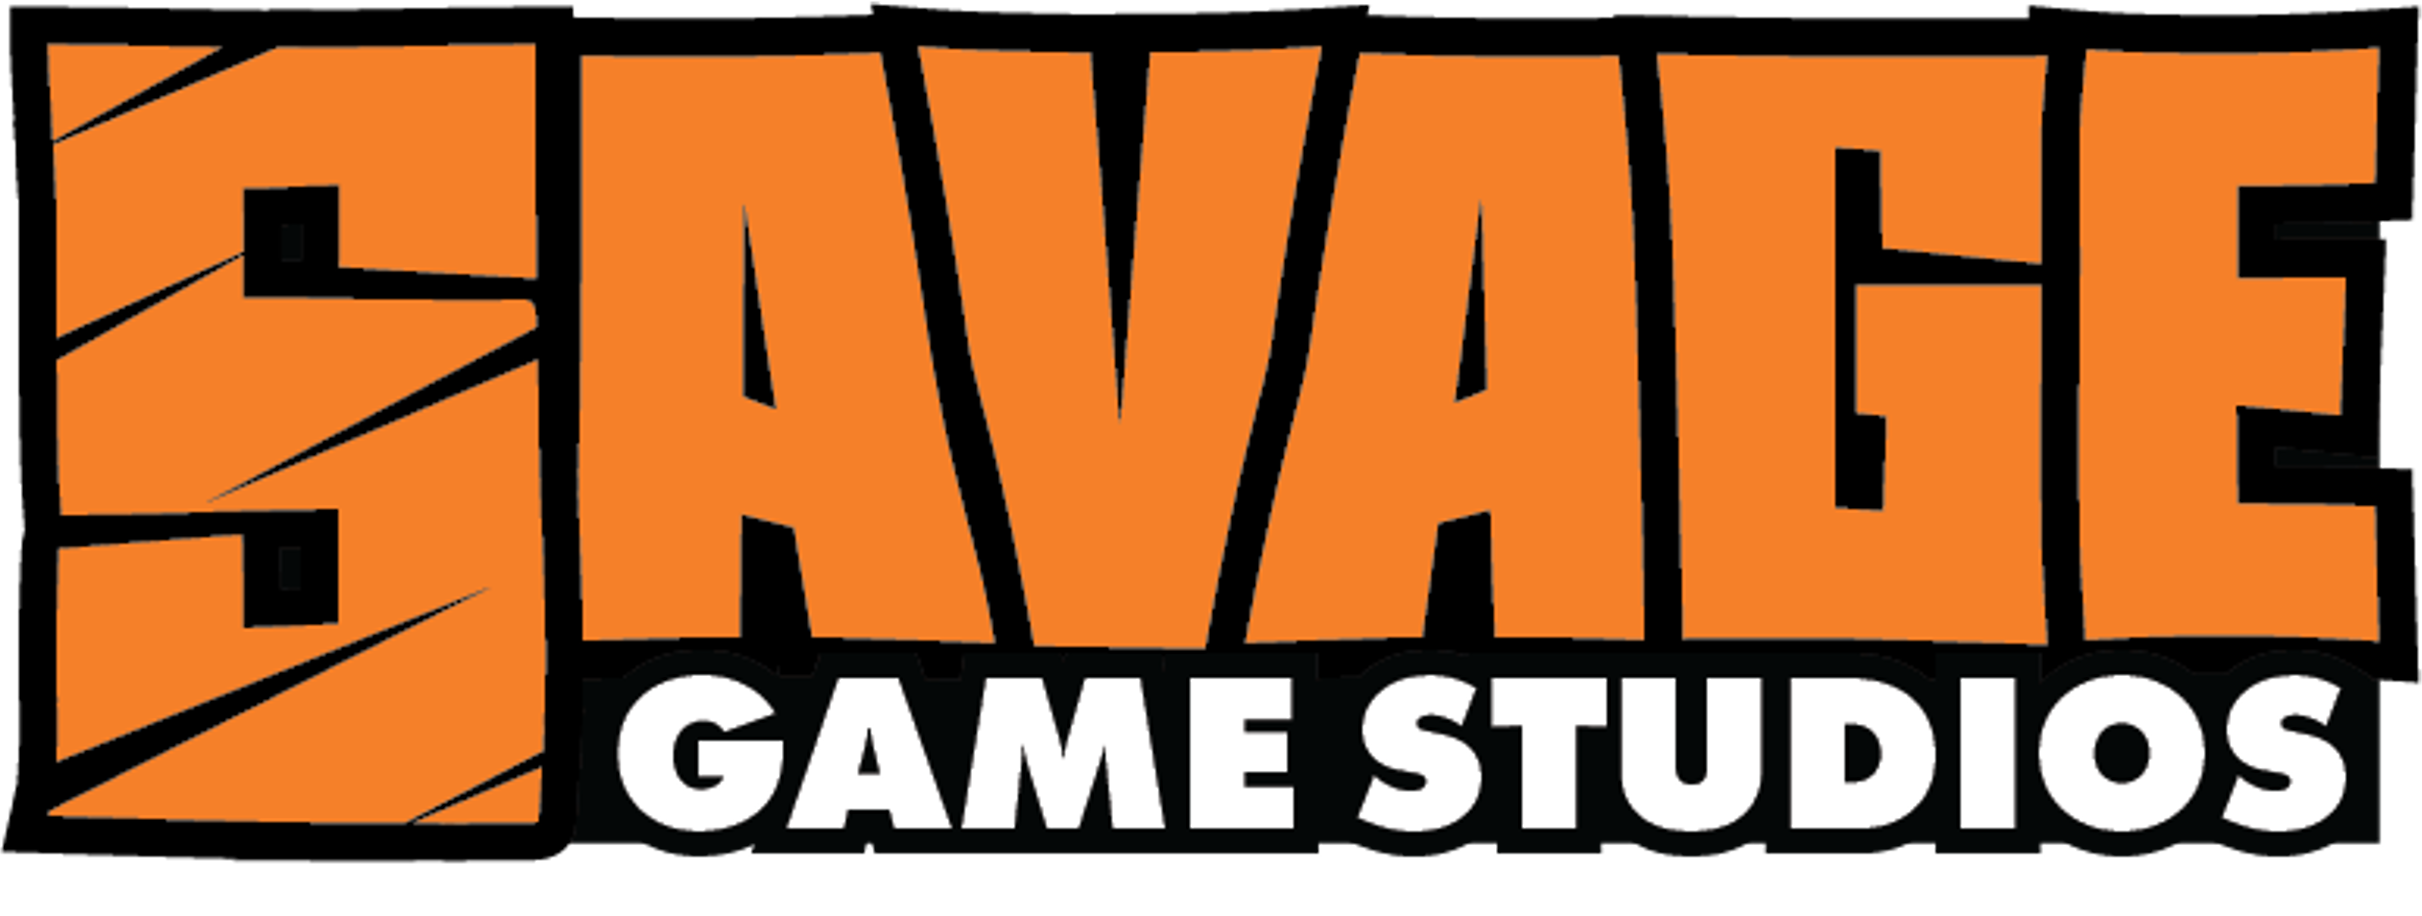 Savage Game Studios